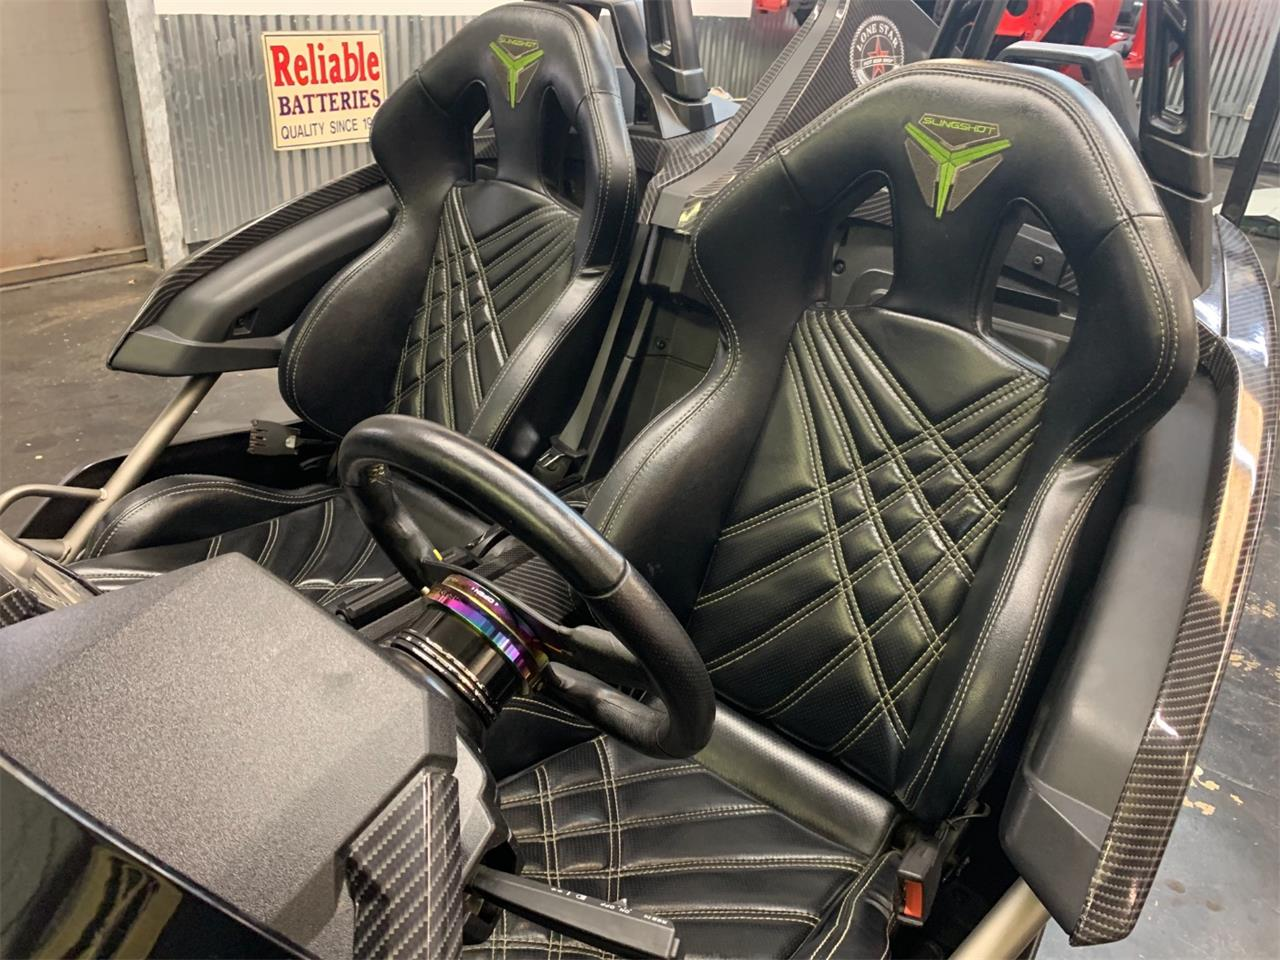 2015 Polaris Slingshot (CC-1336723) for sale in Lewisville, Texas